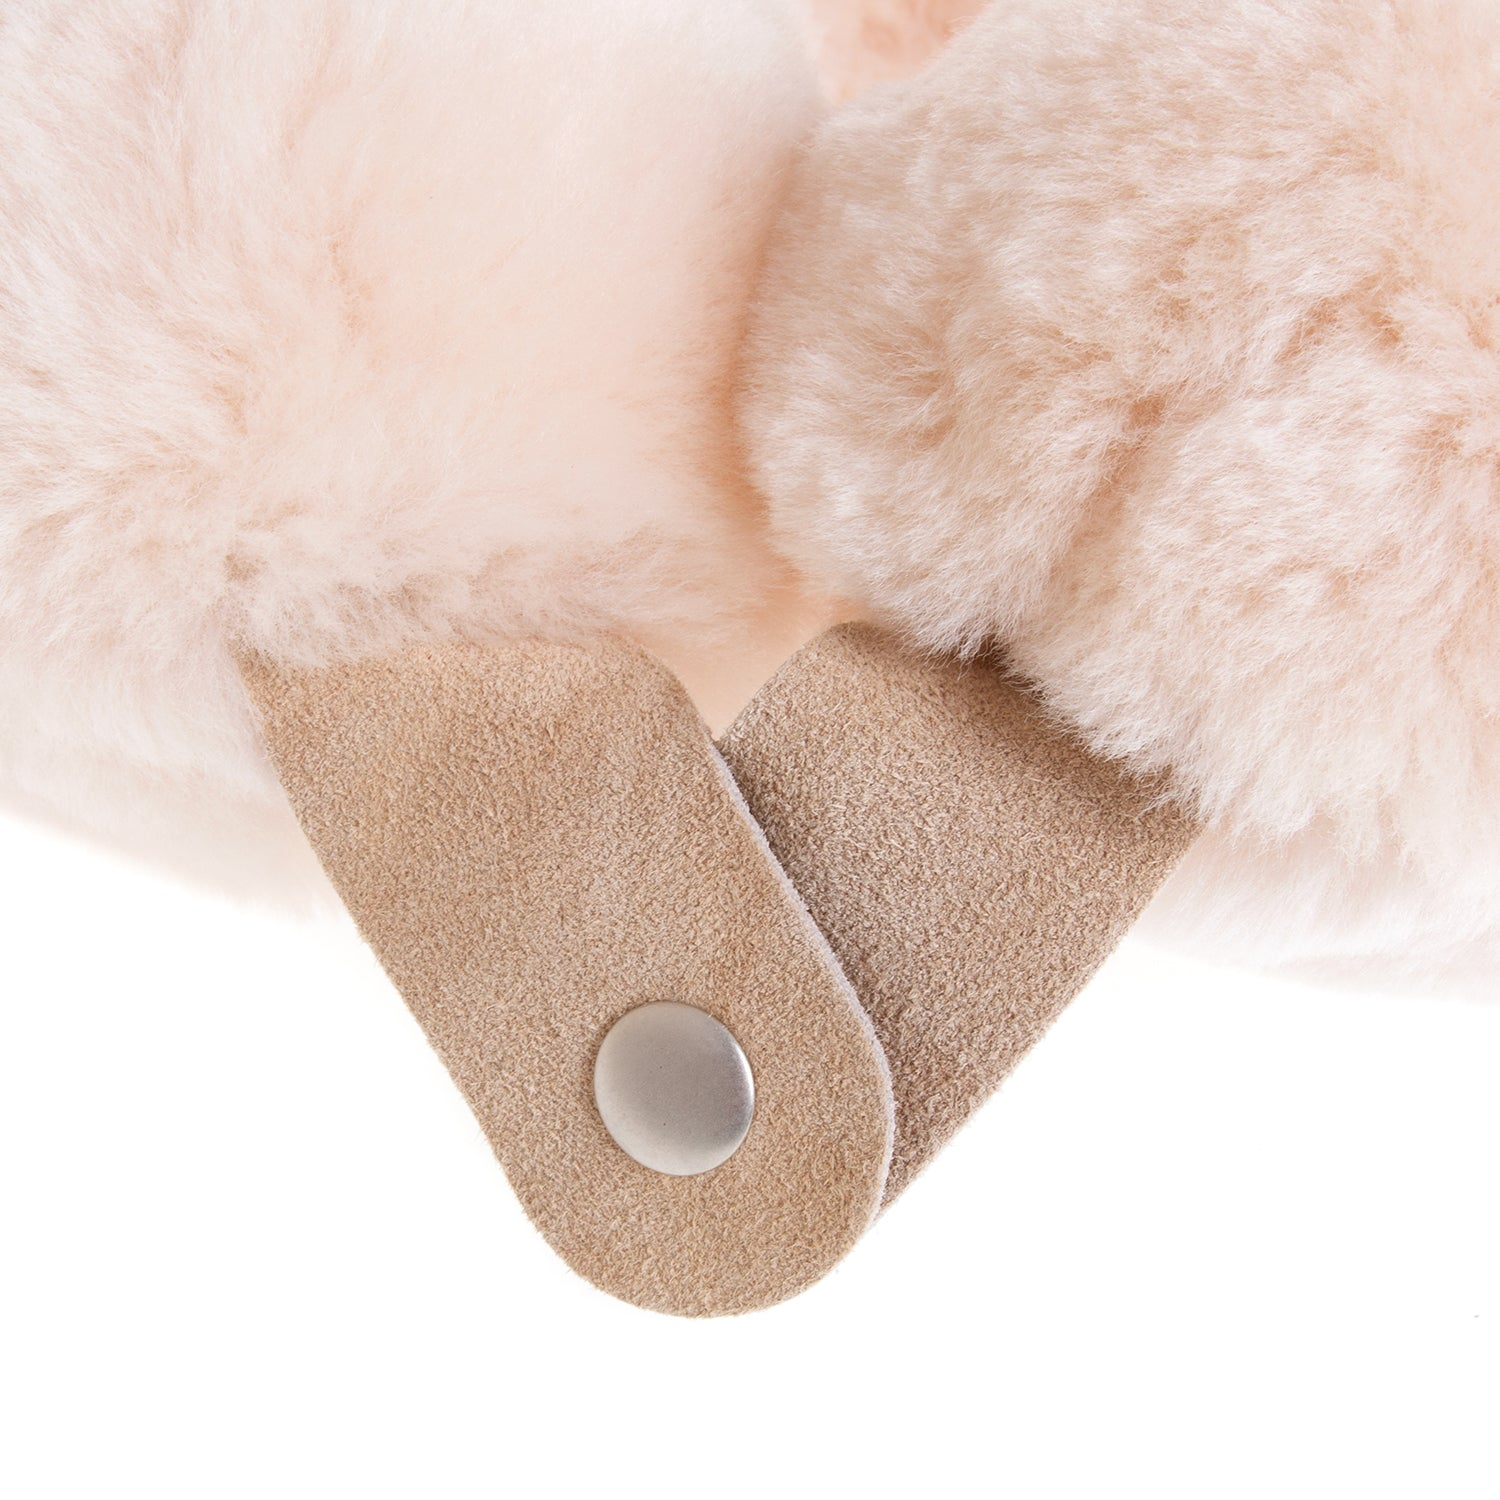 Australian Shearling Travel Neck Pillow - globite